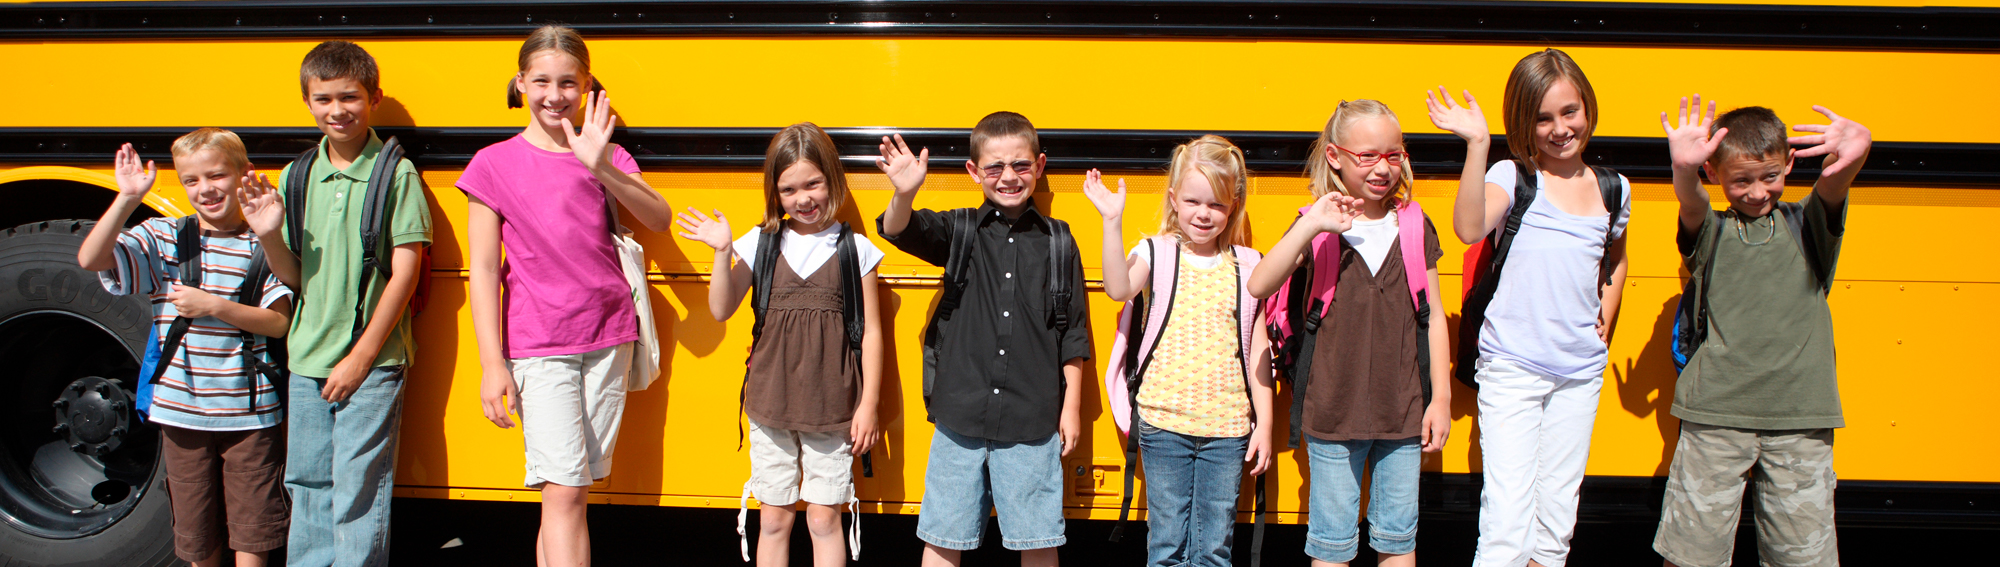 students standing in front of a bus waving